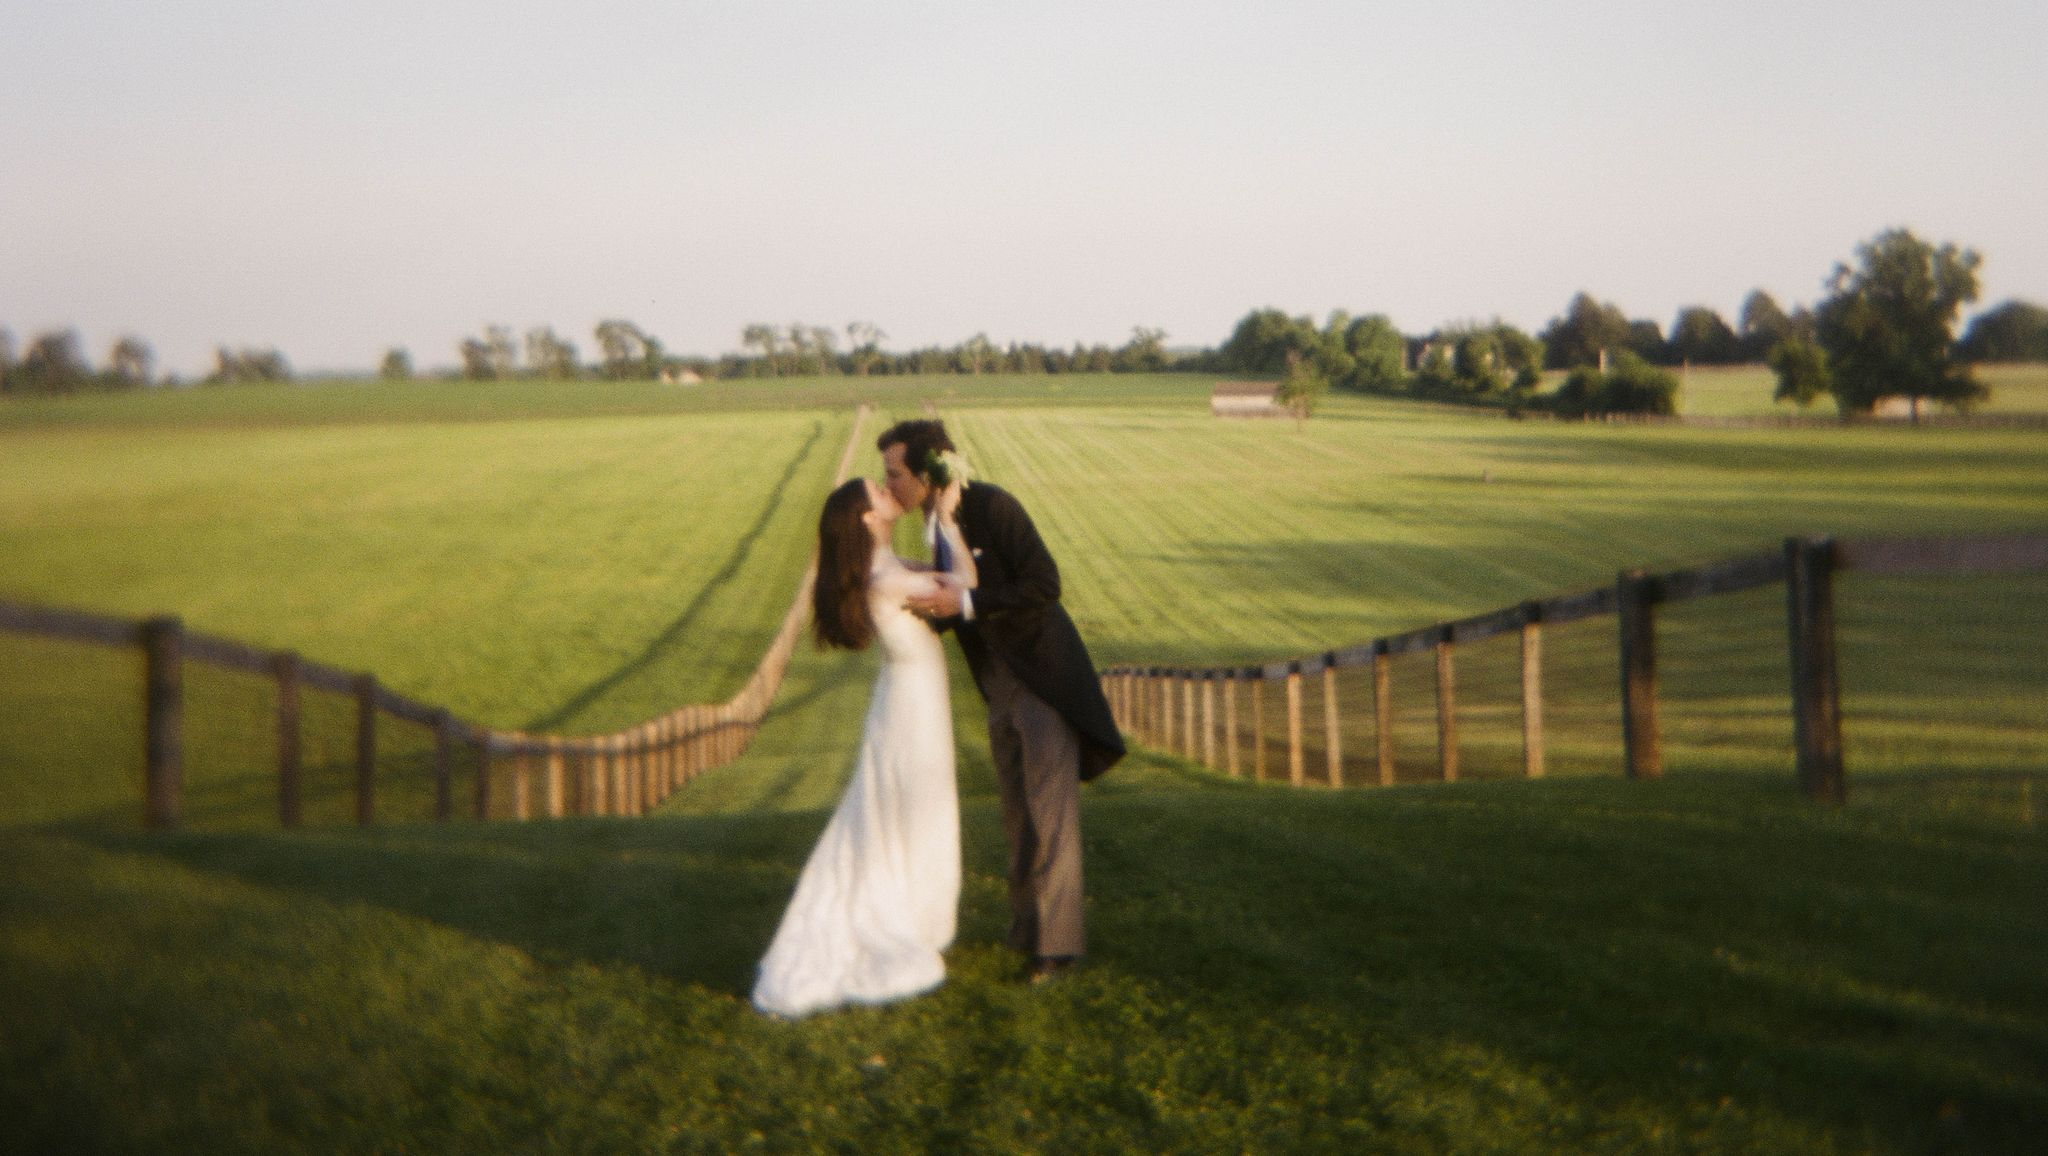 Katie Ermilio & Tylee Abbott's Wedding Turned Pennsylvania into the English Countryside—on a Horse Farm